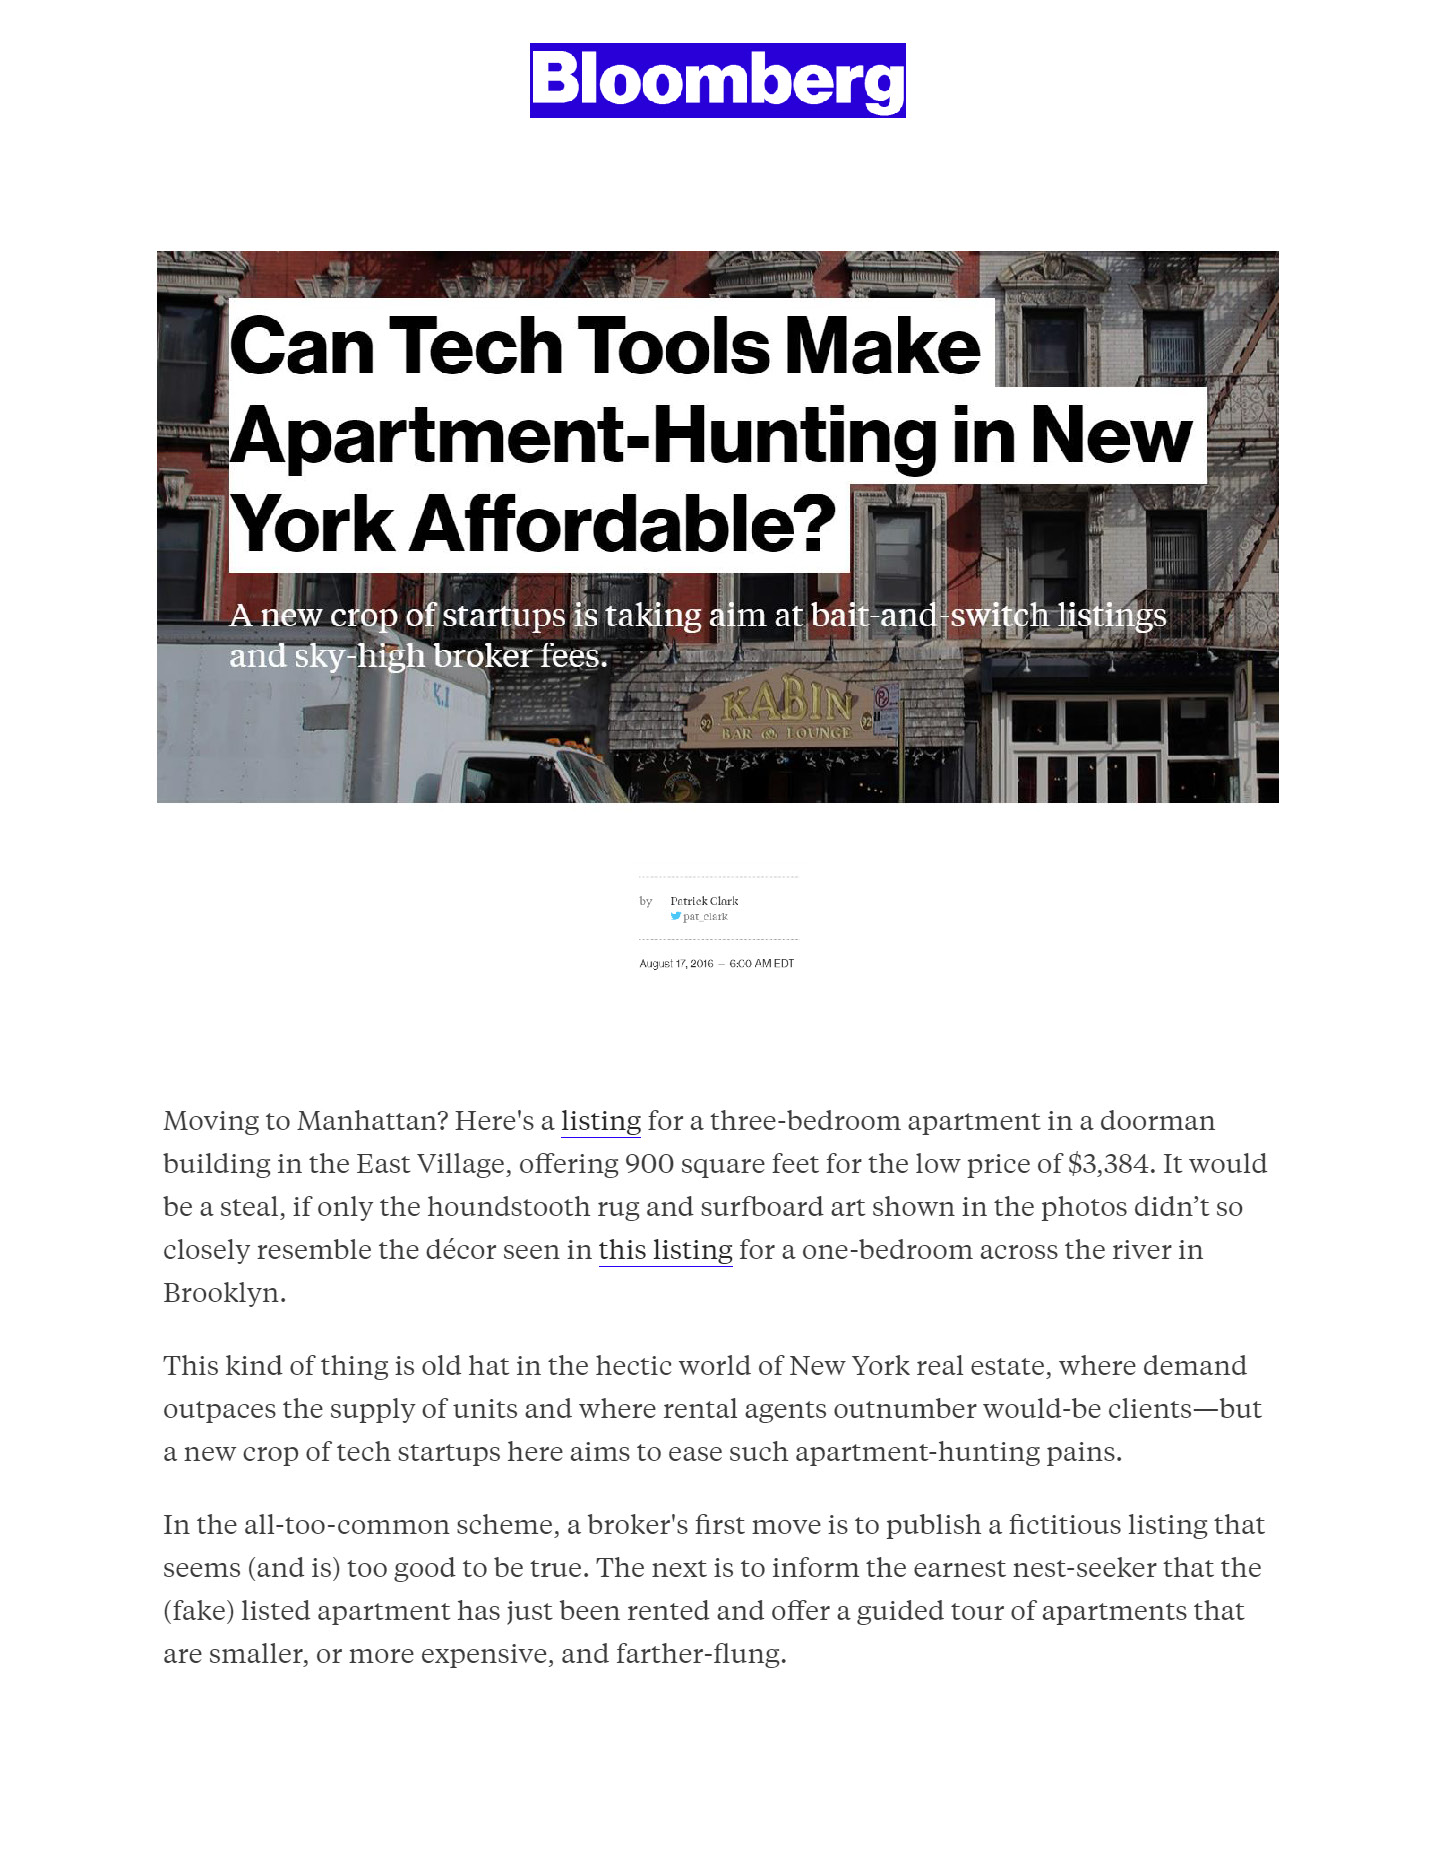 Bloomberg - Can Tech Tools Make Apartment-Hunting in New York Affordable..._Page_1